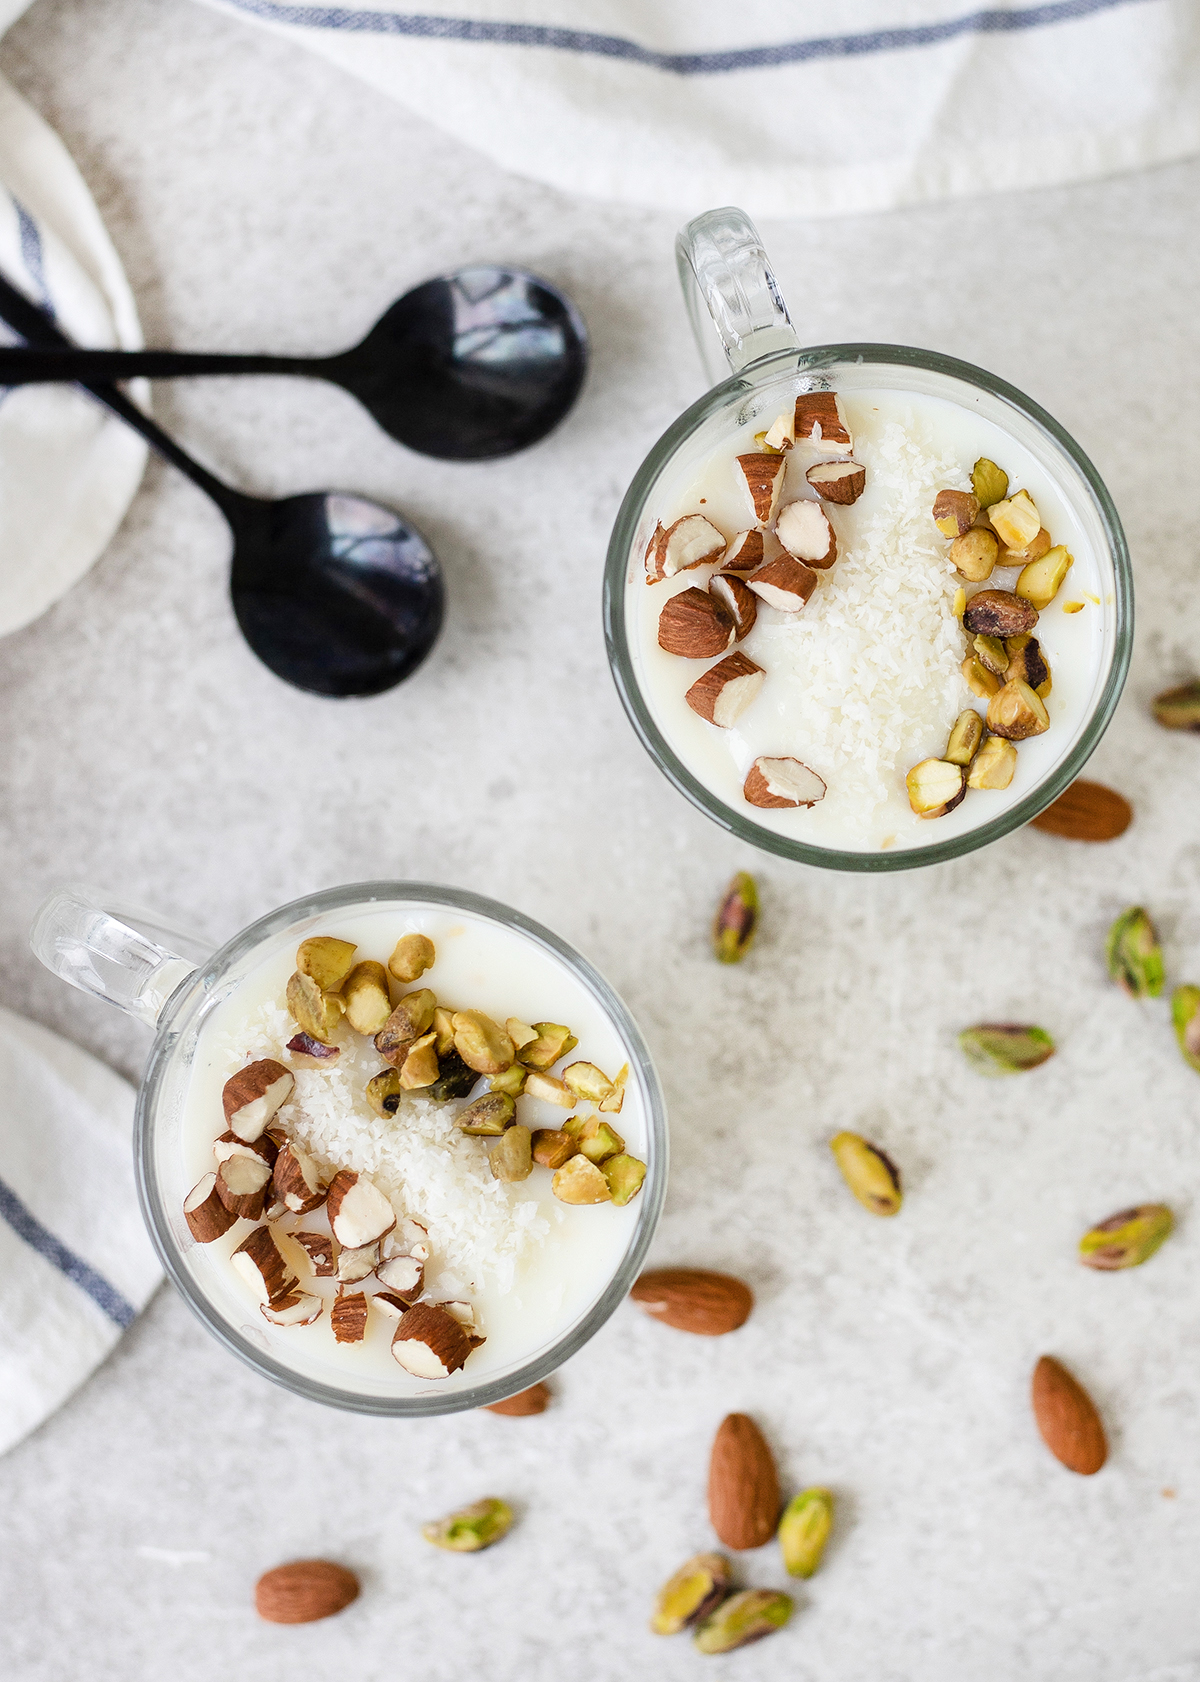 Sahlab is a rich and creamy hot drink